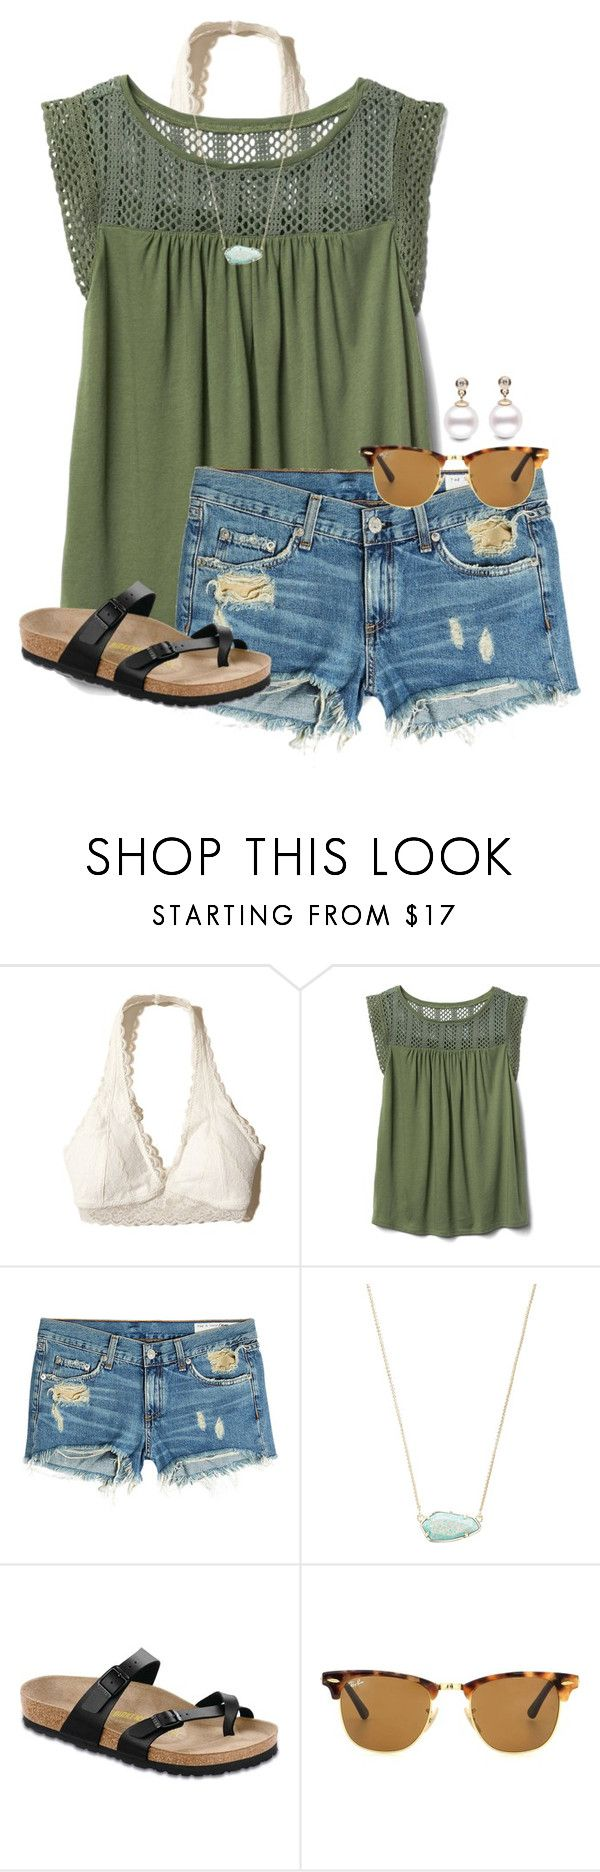 """""""Finals next week"""" by auburnlady ❤ liked on Polyvore featuring Hollister Co., Gap, rag & bone, Kendra Scott, Birkenstock and Ray-Ban"""